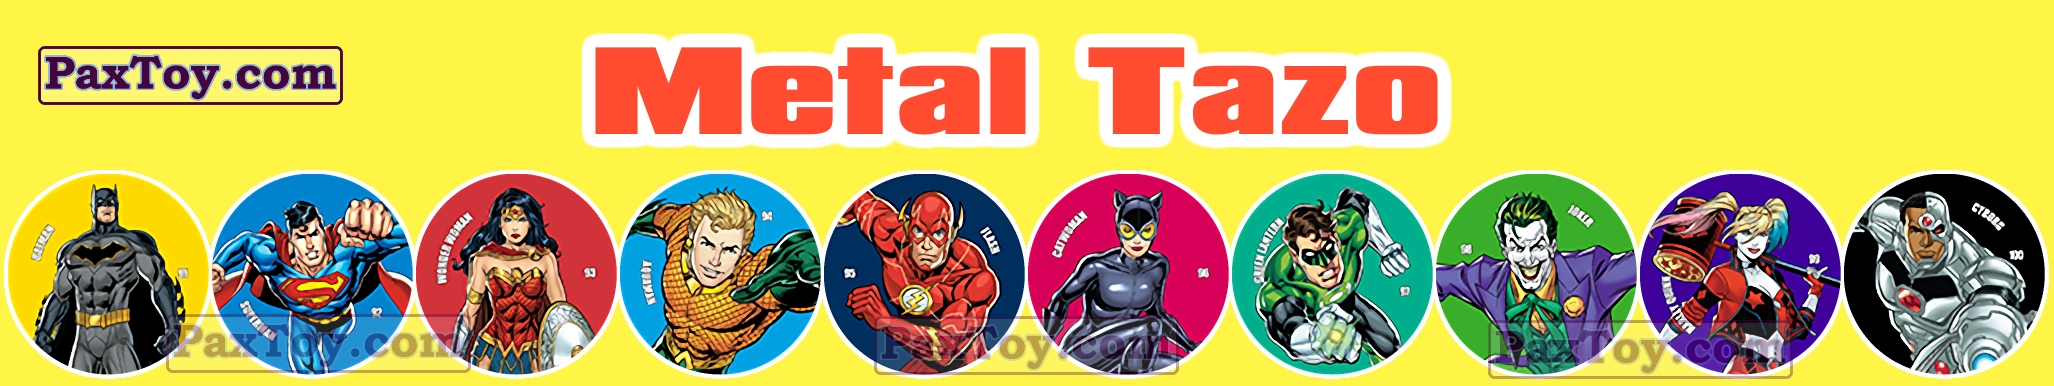 PaxToy Chipicao 2019 Justice League metal TAZO